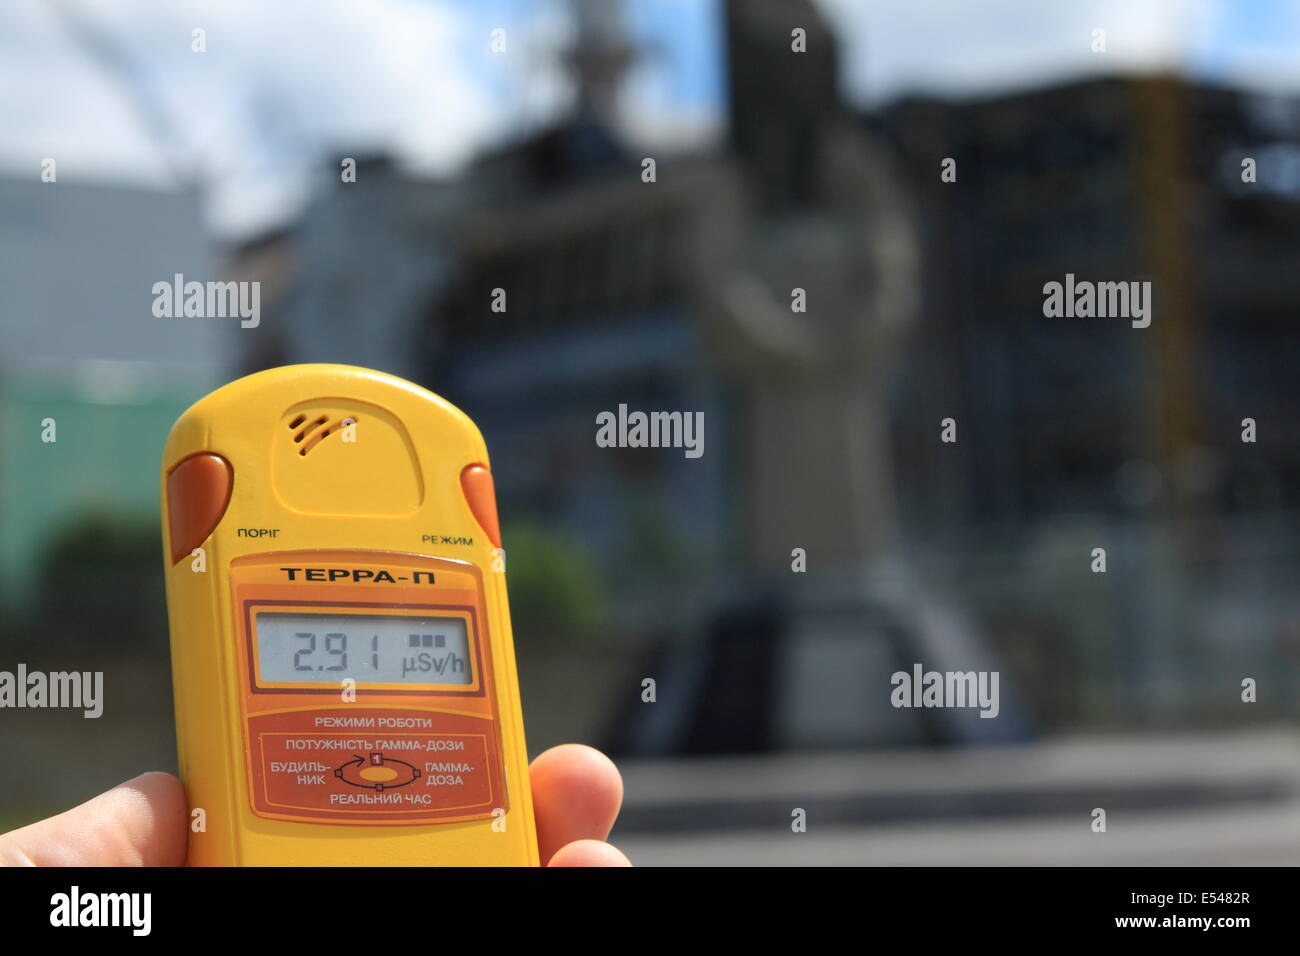 Tourist with a dosimeter takes a radiation reading with the abandoned Chernobyl reactor 4 in the background. - Stock Image